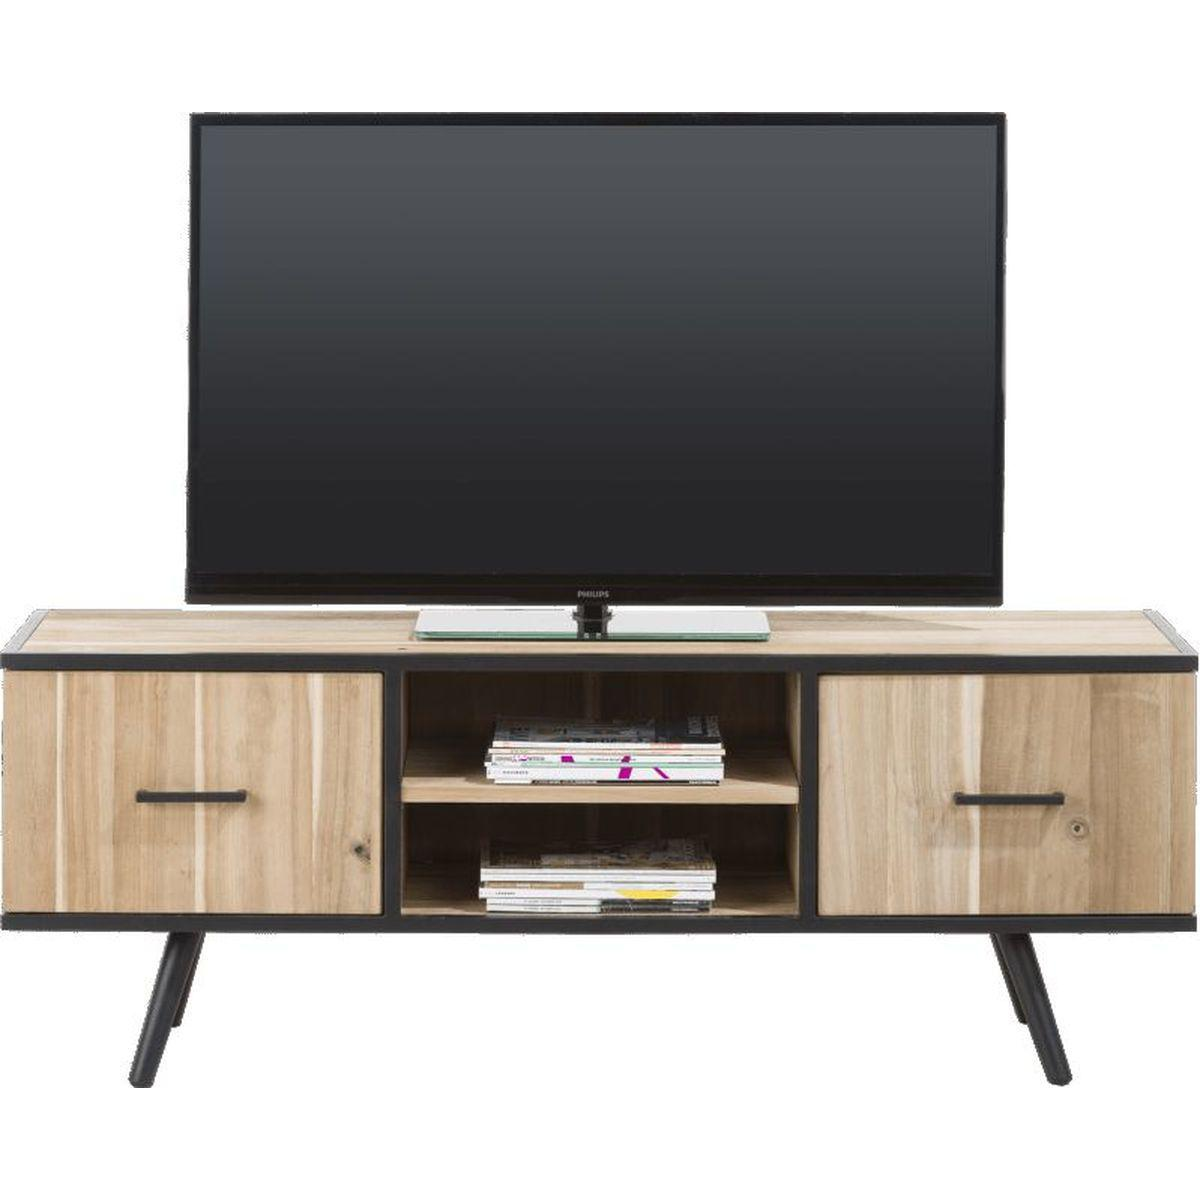 Meuble TV KINNA Xooon 150cm